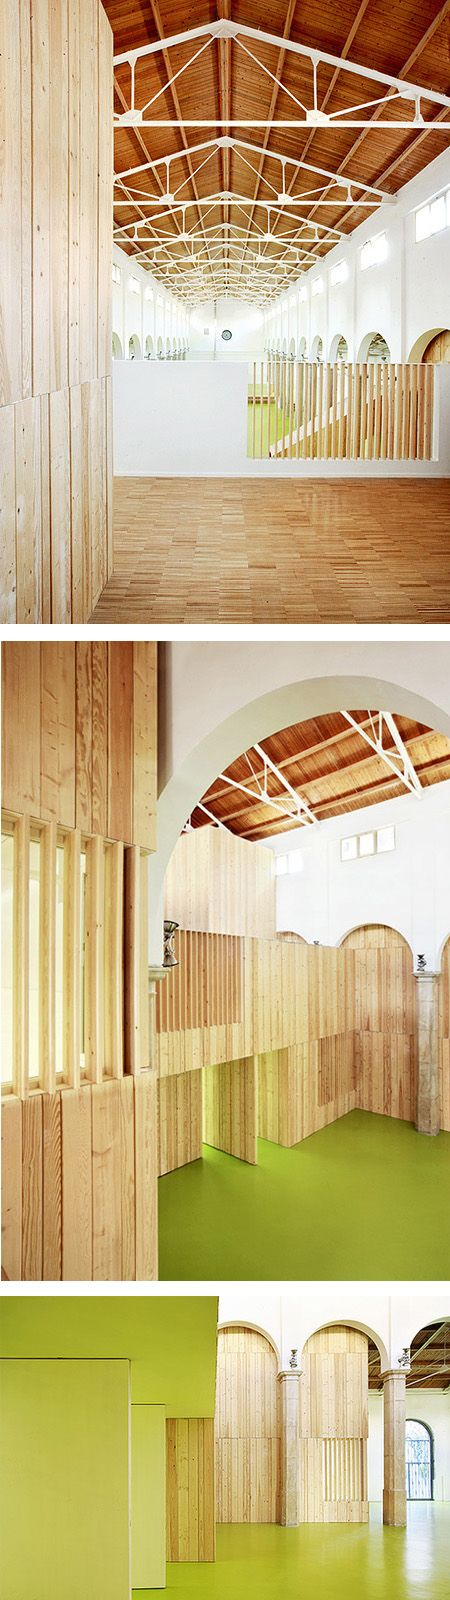 Refurbishment of the old marketplace as a children´s center by miquel mariné, césar rueda bon.